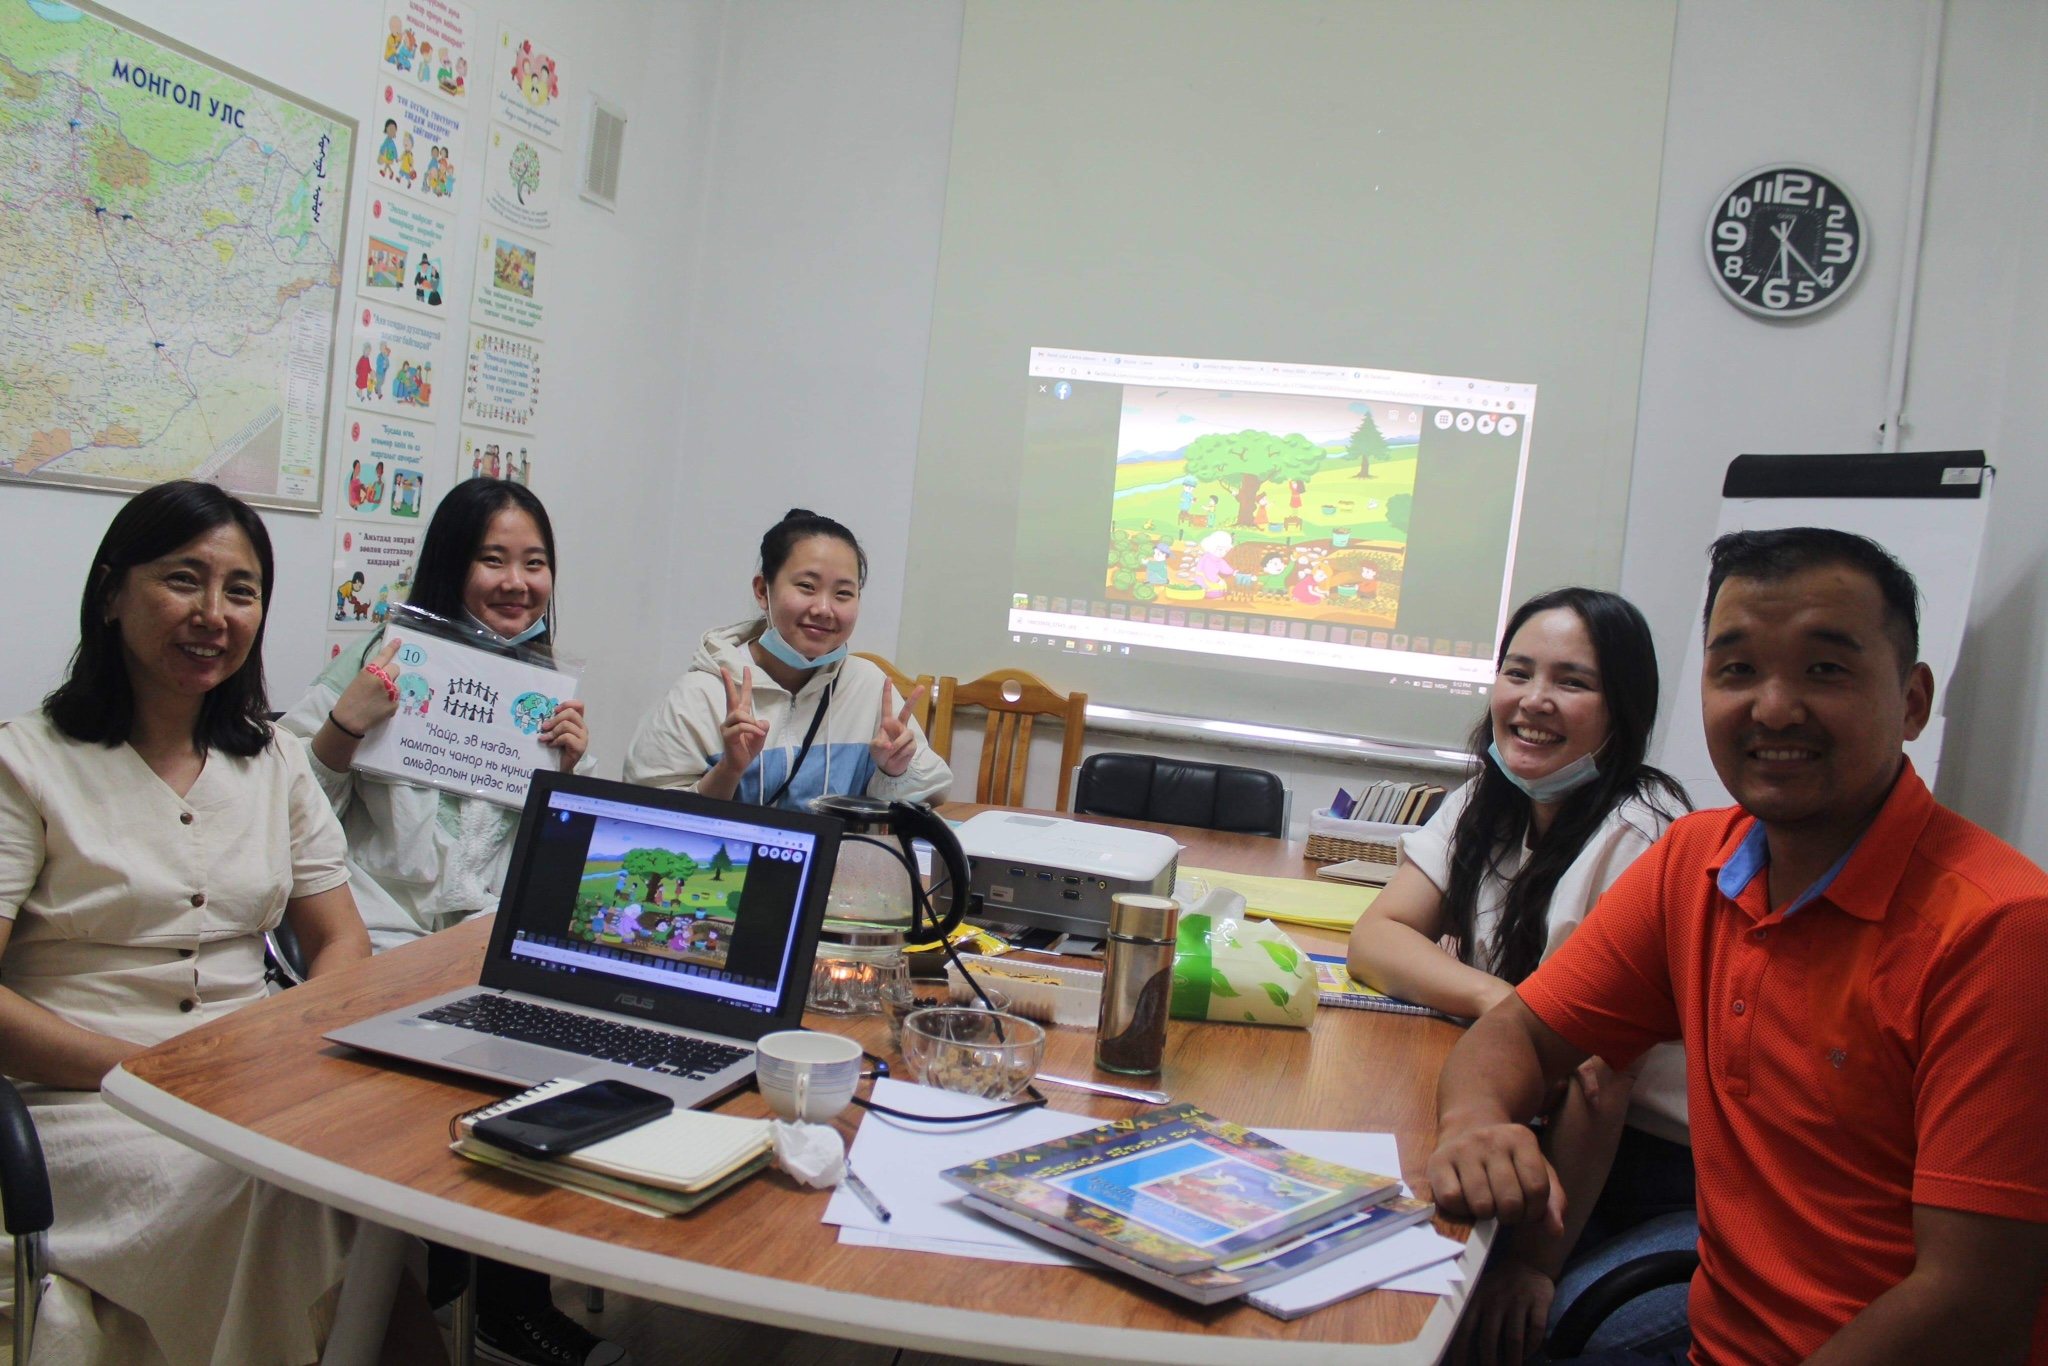 Consultations on developing quotations for specially designed Mongolian imagery